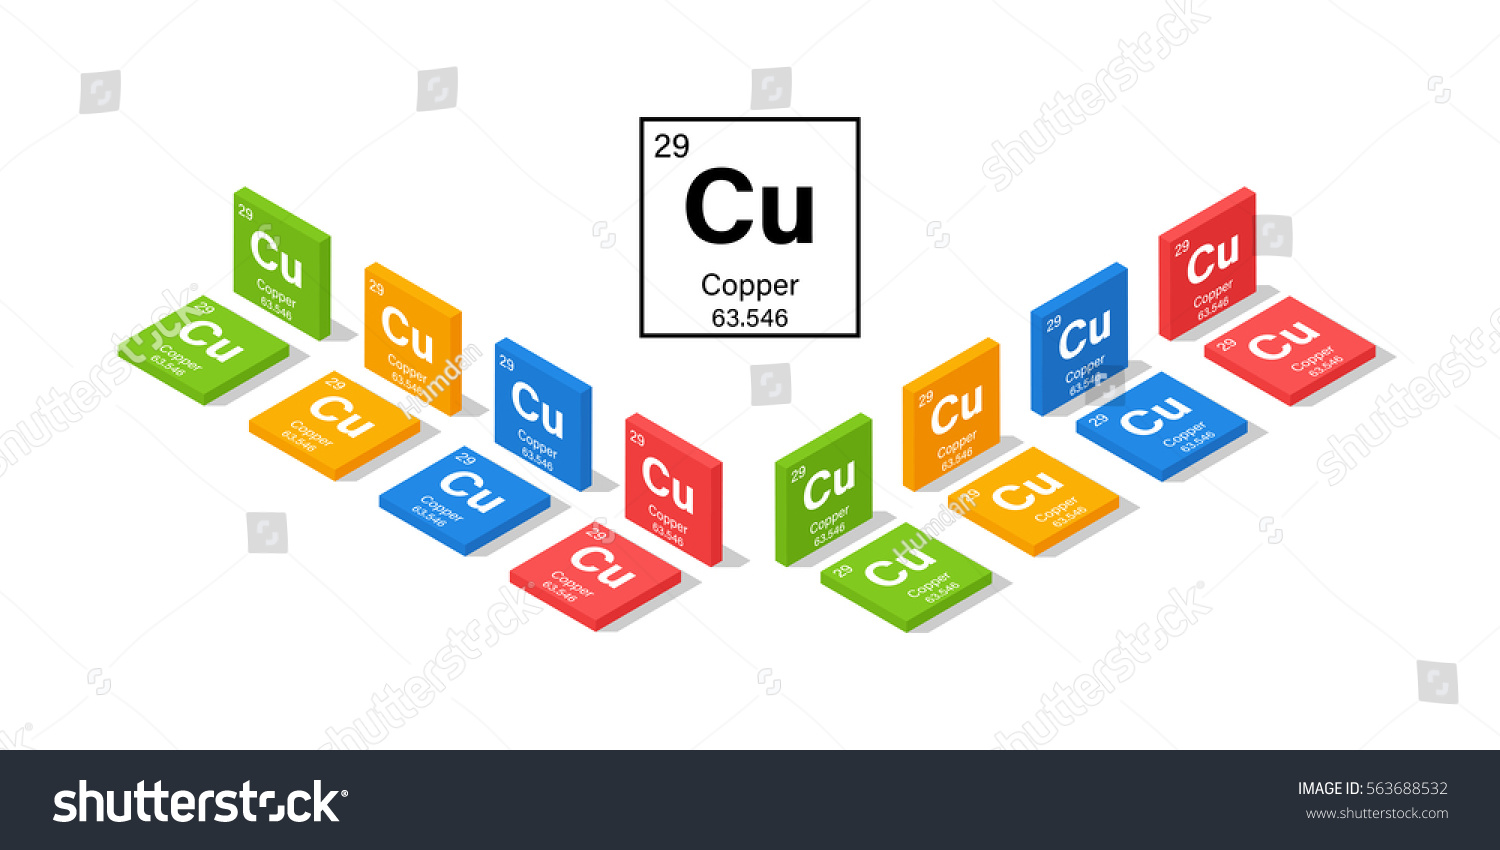 Element cu periodic table choice image periodic table images copper element periodic table gallery periodic table images copper periodic table images periodic table images periodic gamestrikefo Gallery